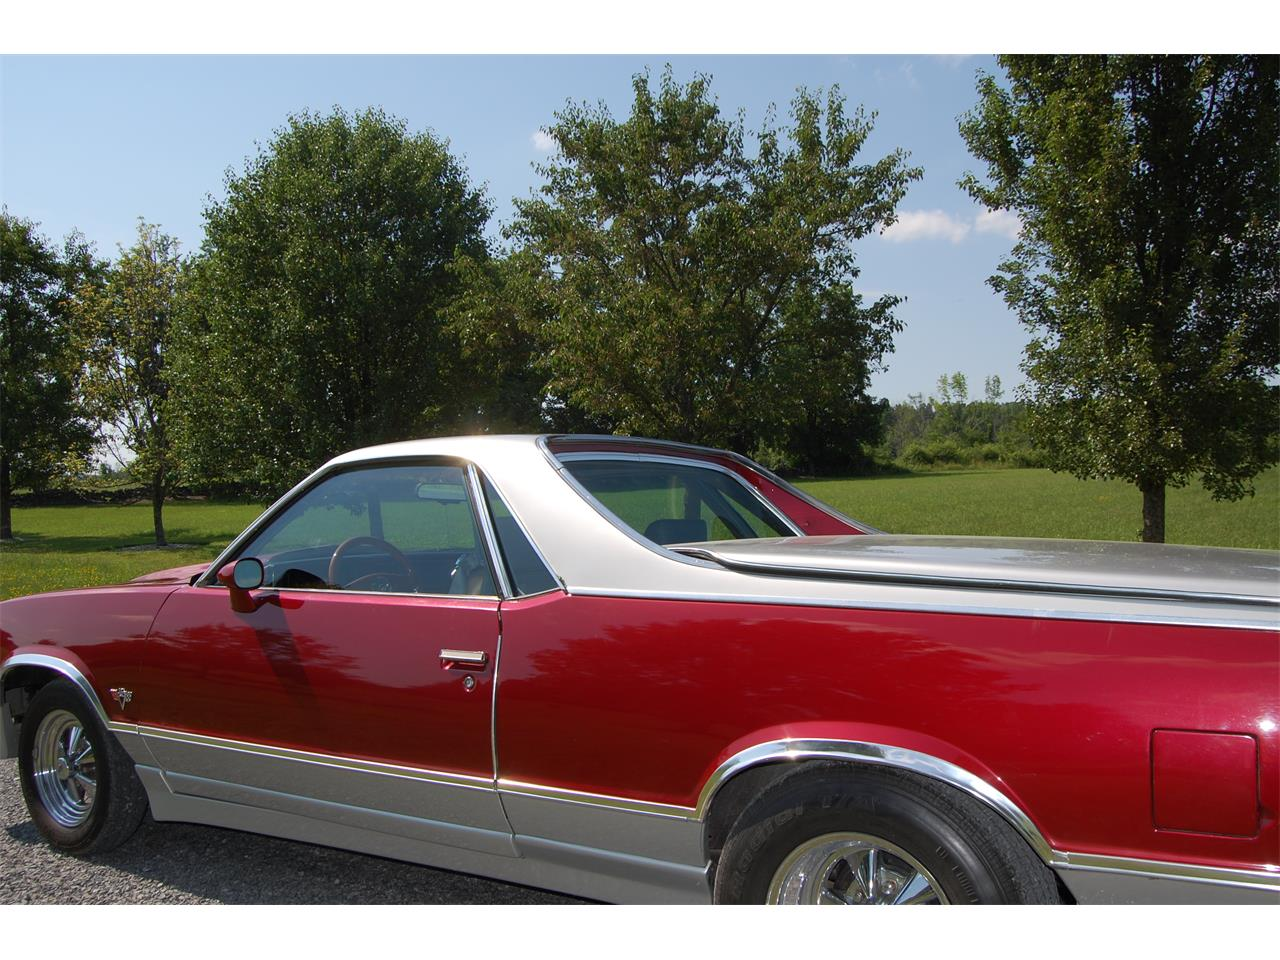 Large Picture of '84 Chevrolet El Camino Offered by a Private Seller - O8B6